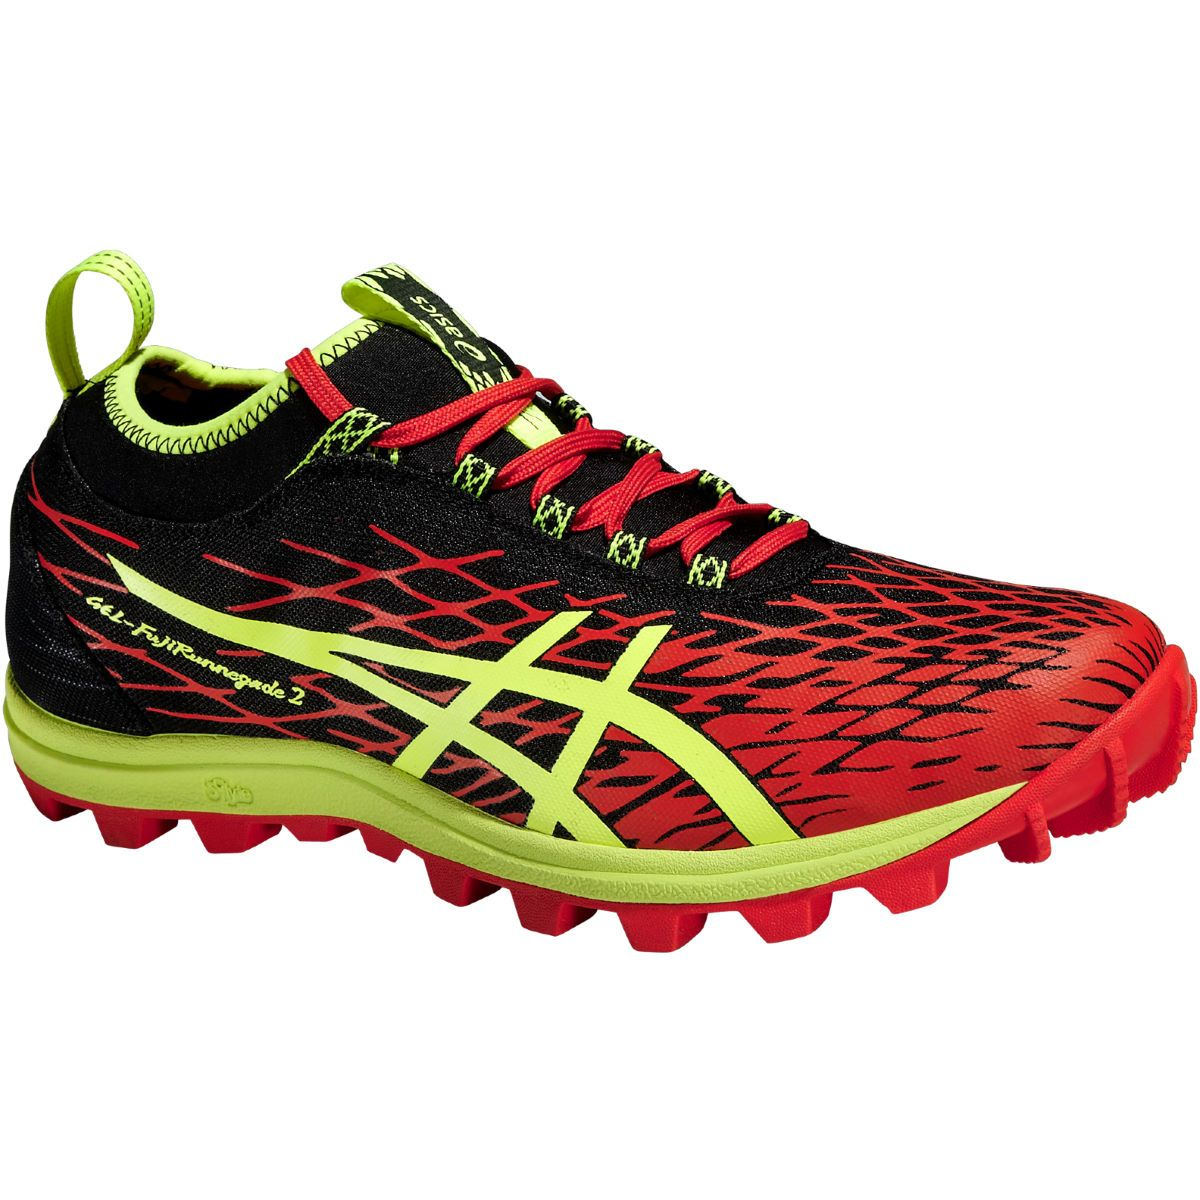 Asics Gel Fuji Runnegade 2 Shoes Ss16 Offroad Running Shoes